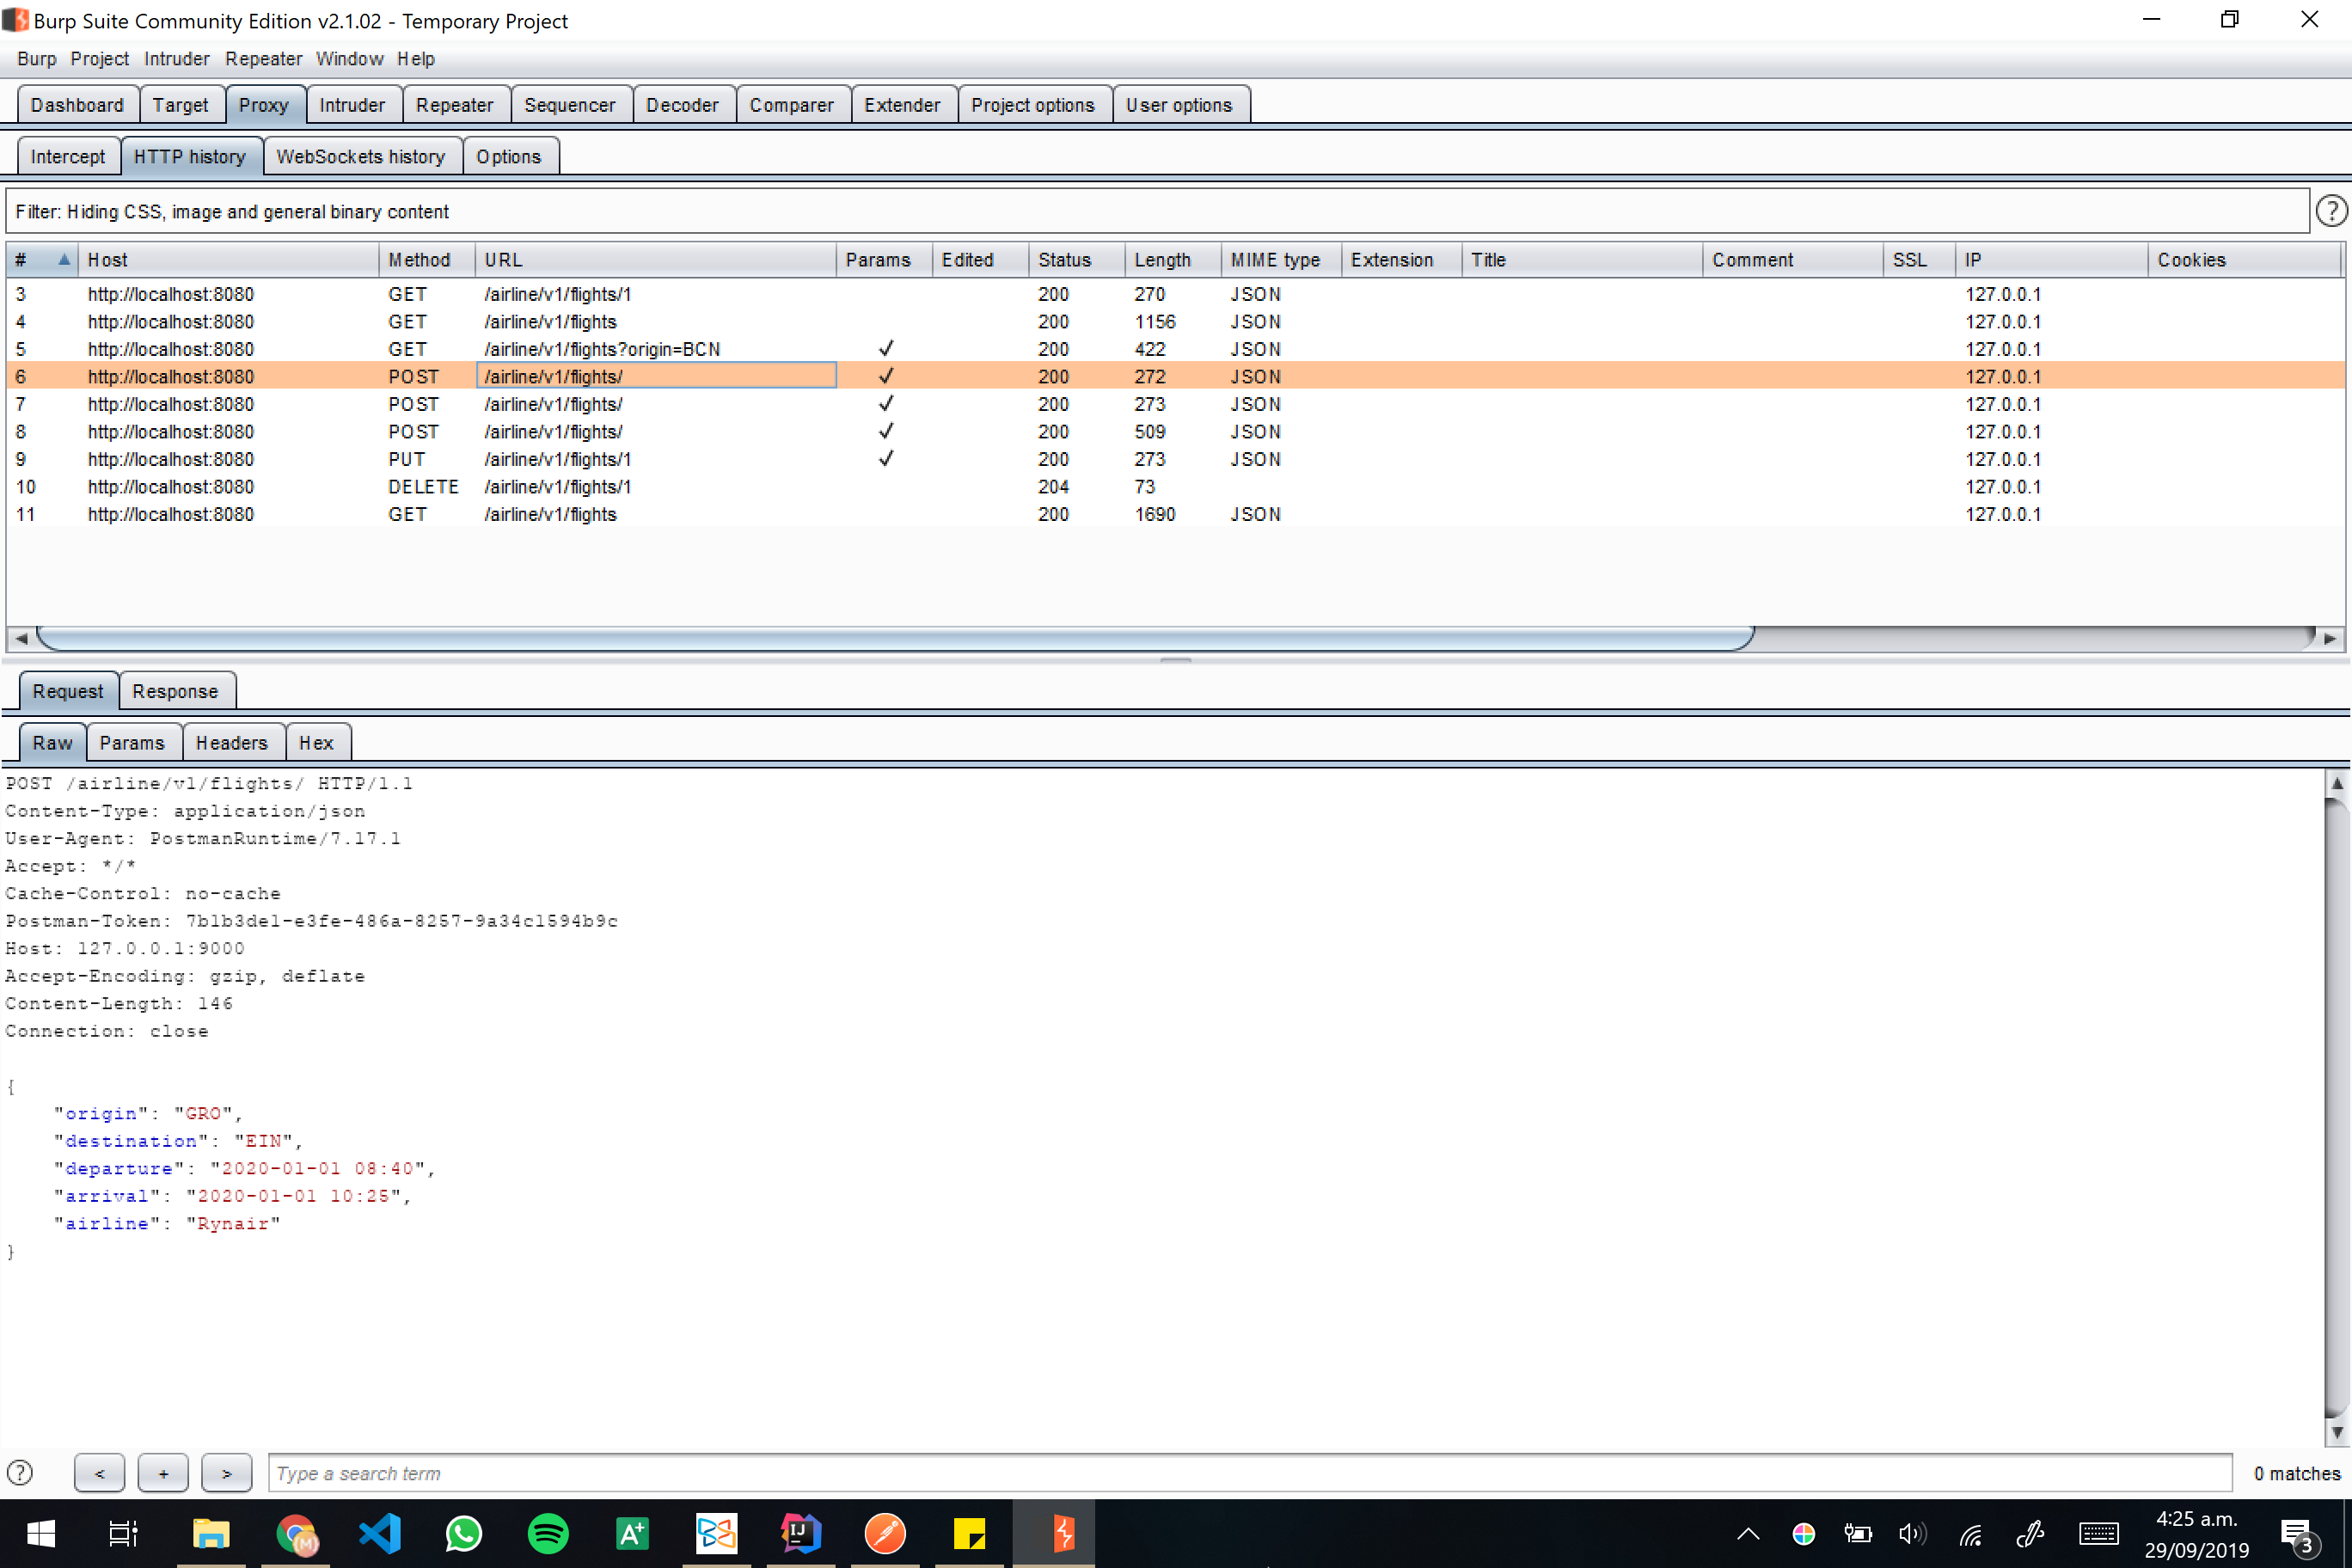 Burp screenshot 11